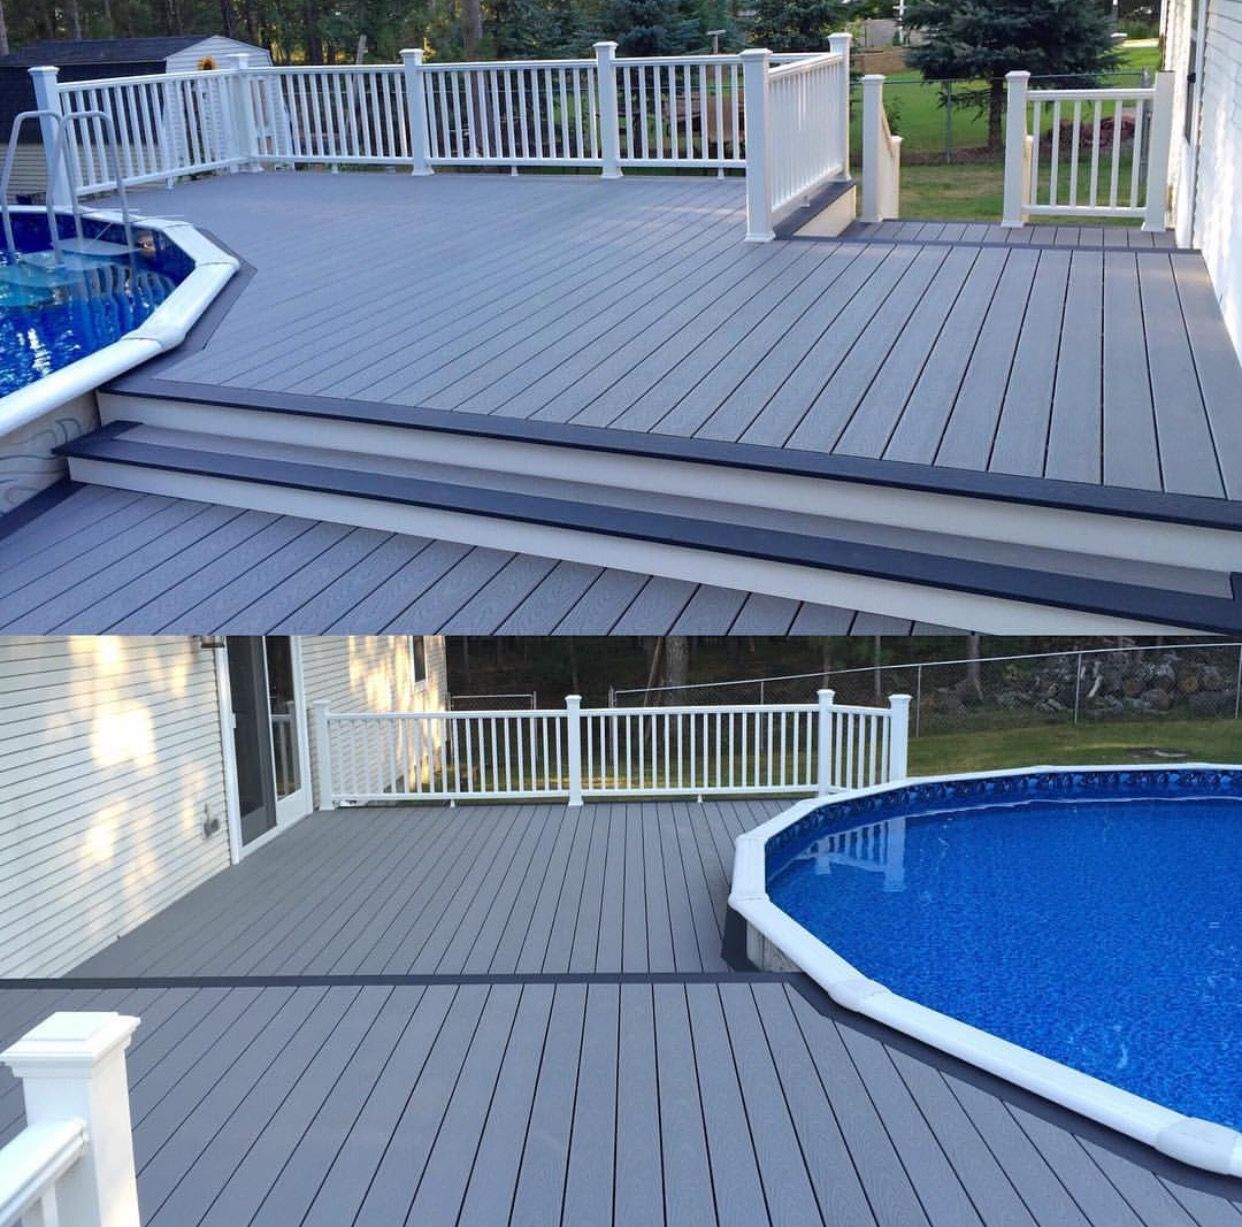 Trex Pebble Grey And Winchester Decking With Transcend Railing Call Renewit Group To Schedule